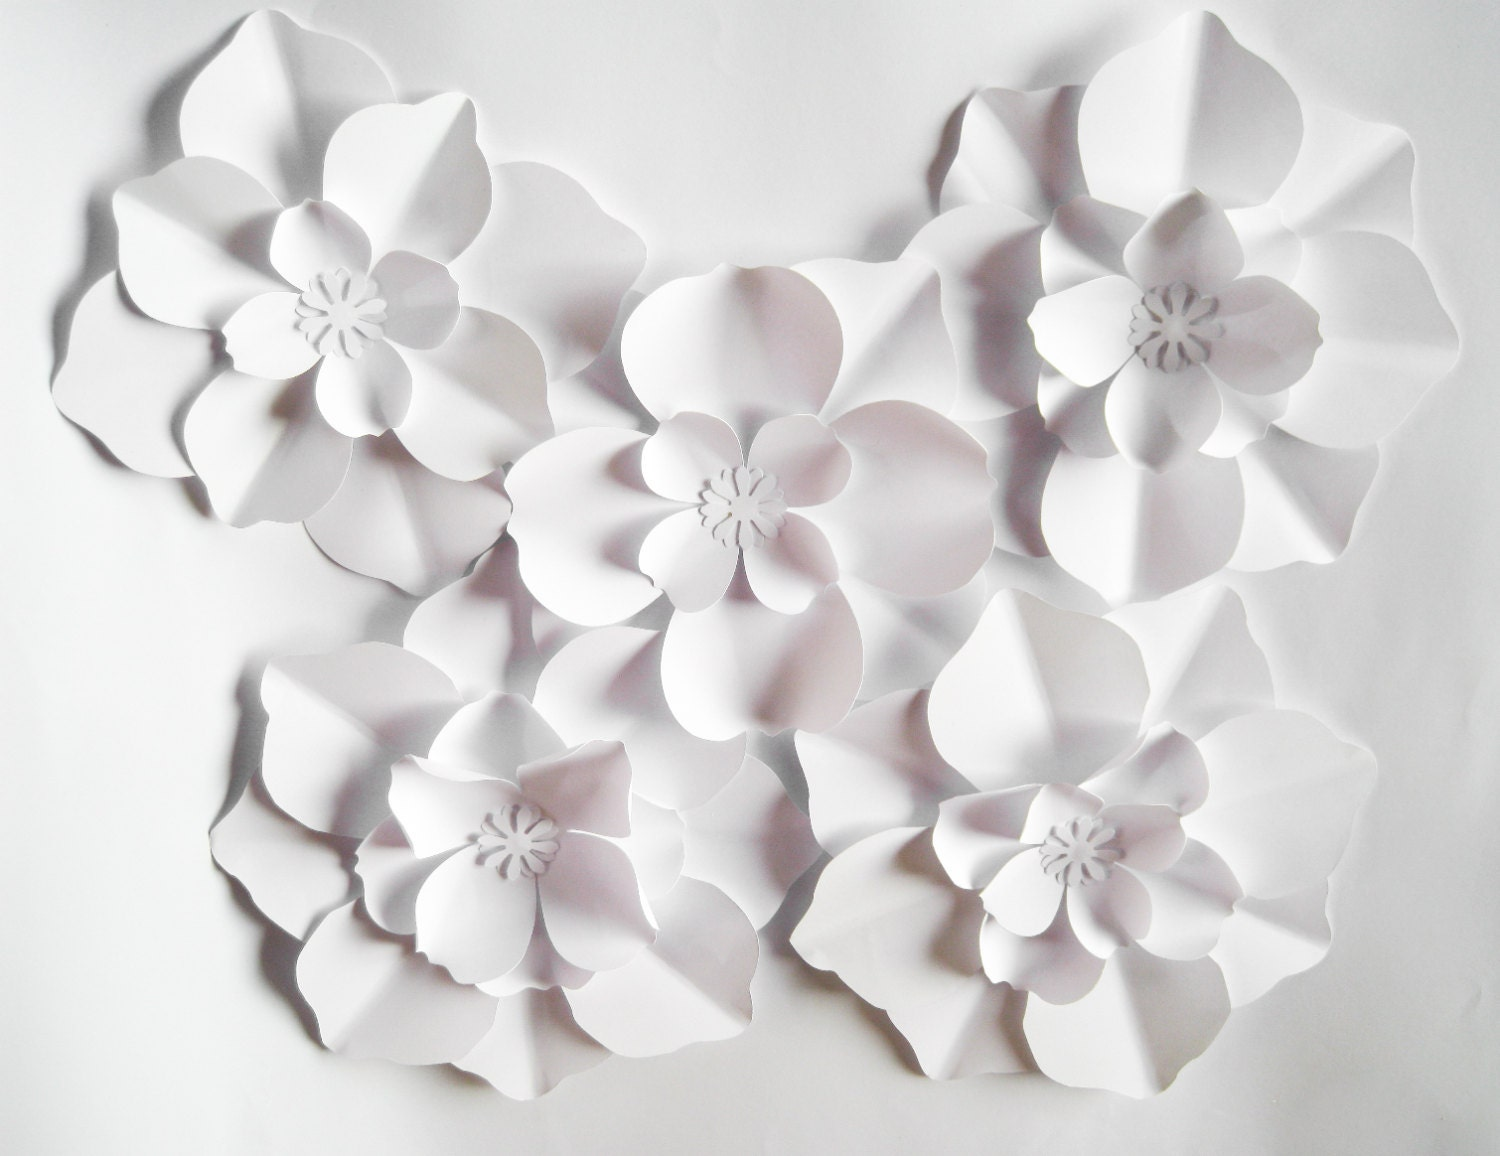 5 White Paper Flowers Big Paper Flowers Arch Flowers Wall